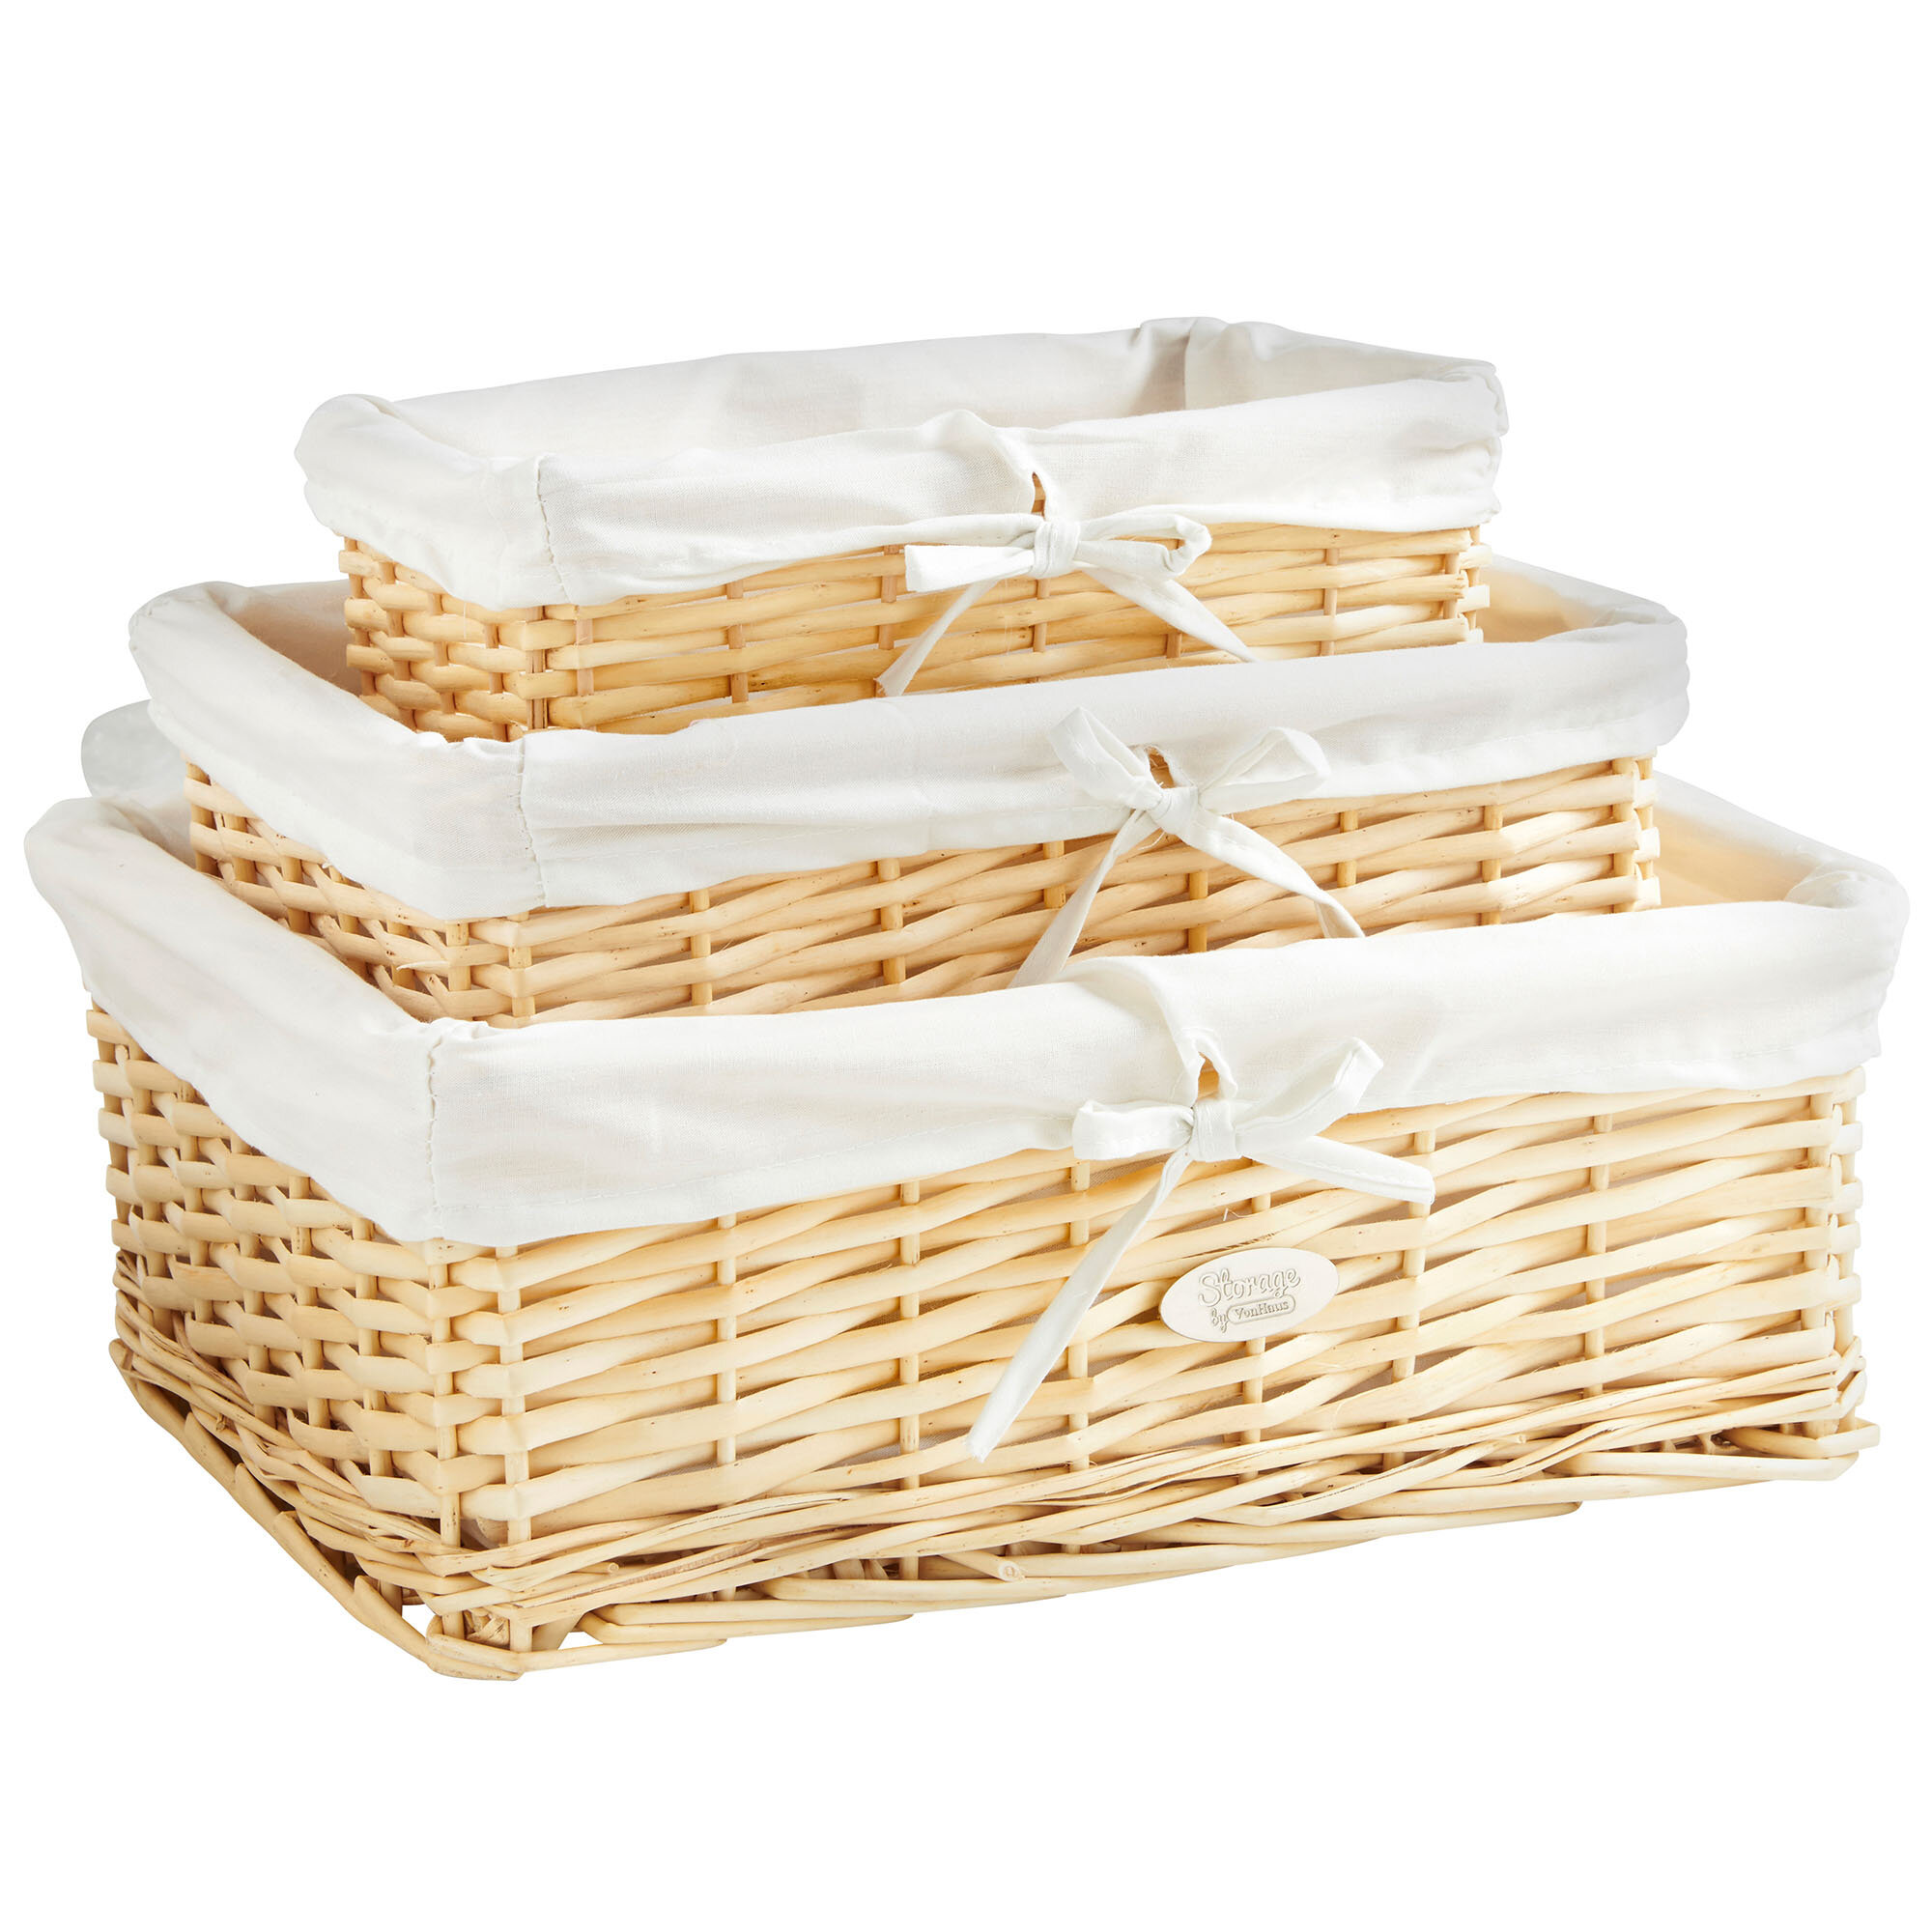 VonHaus 3 Piece Wicker Basket Set & Reviews | Wayfair